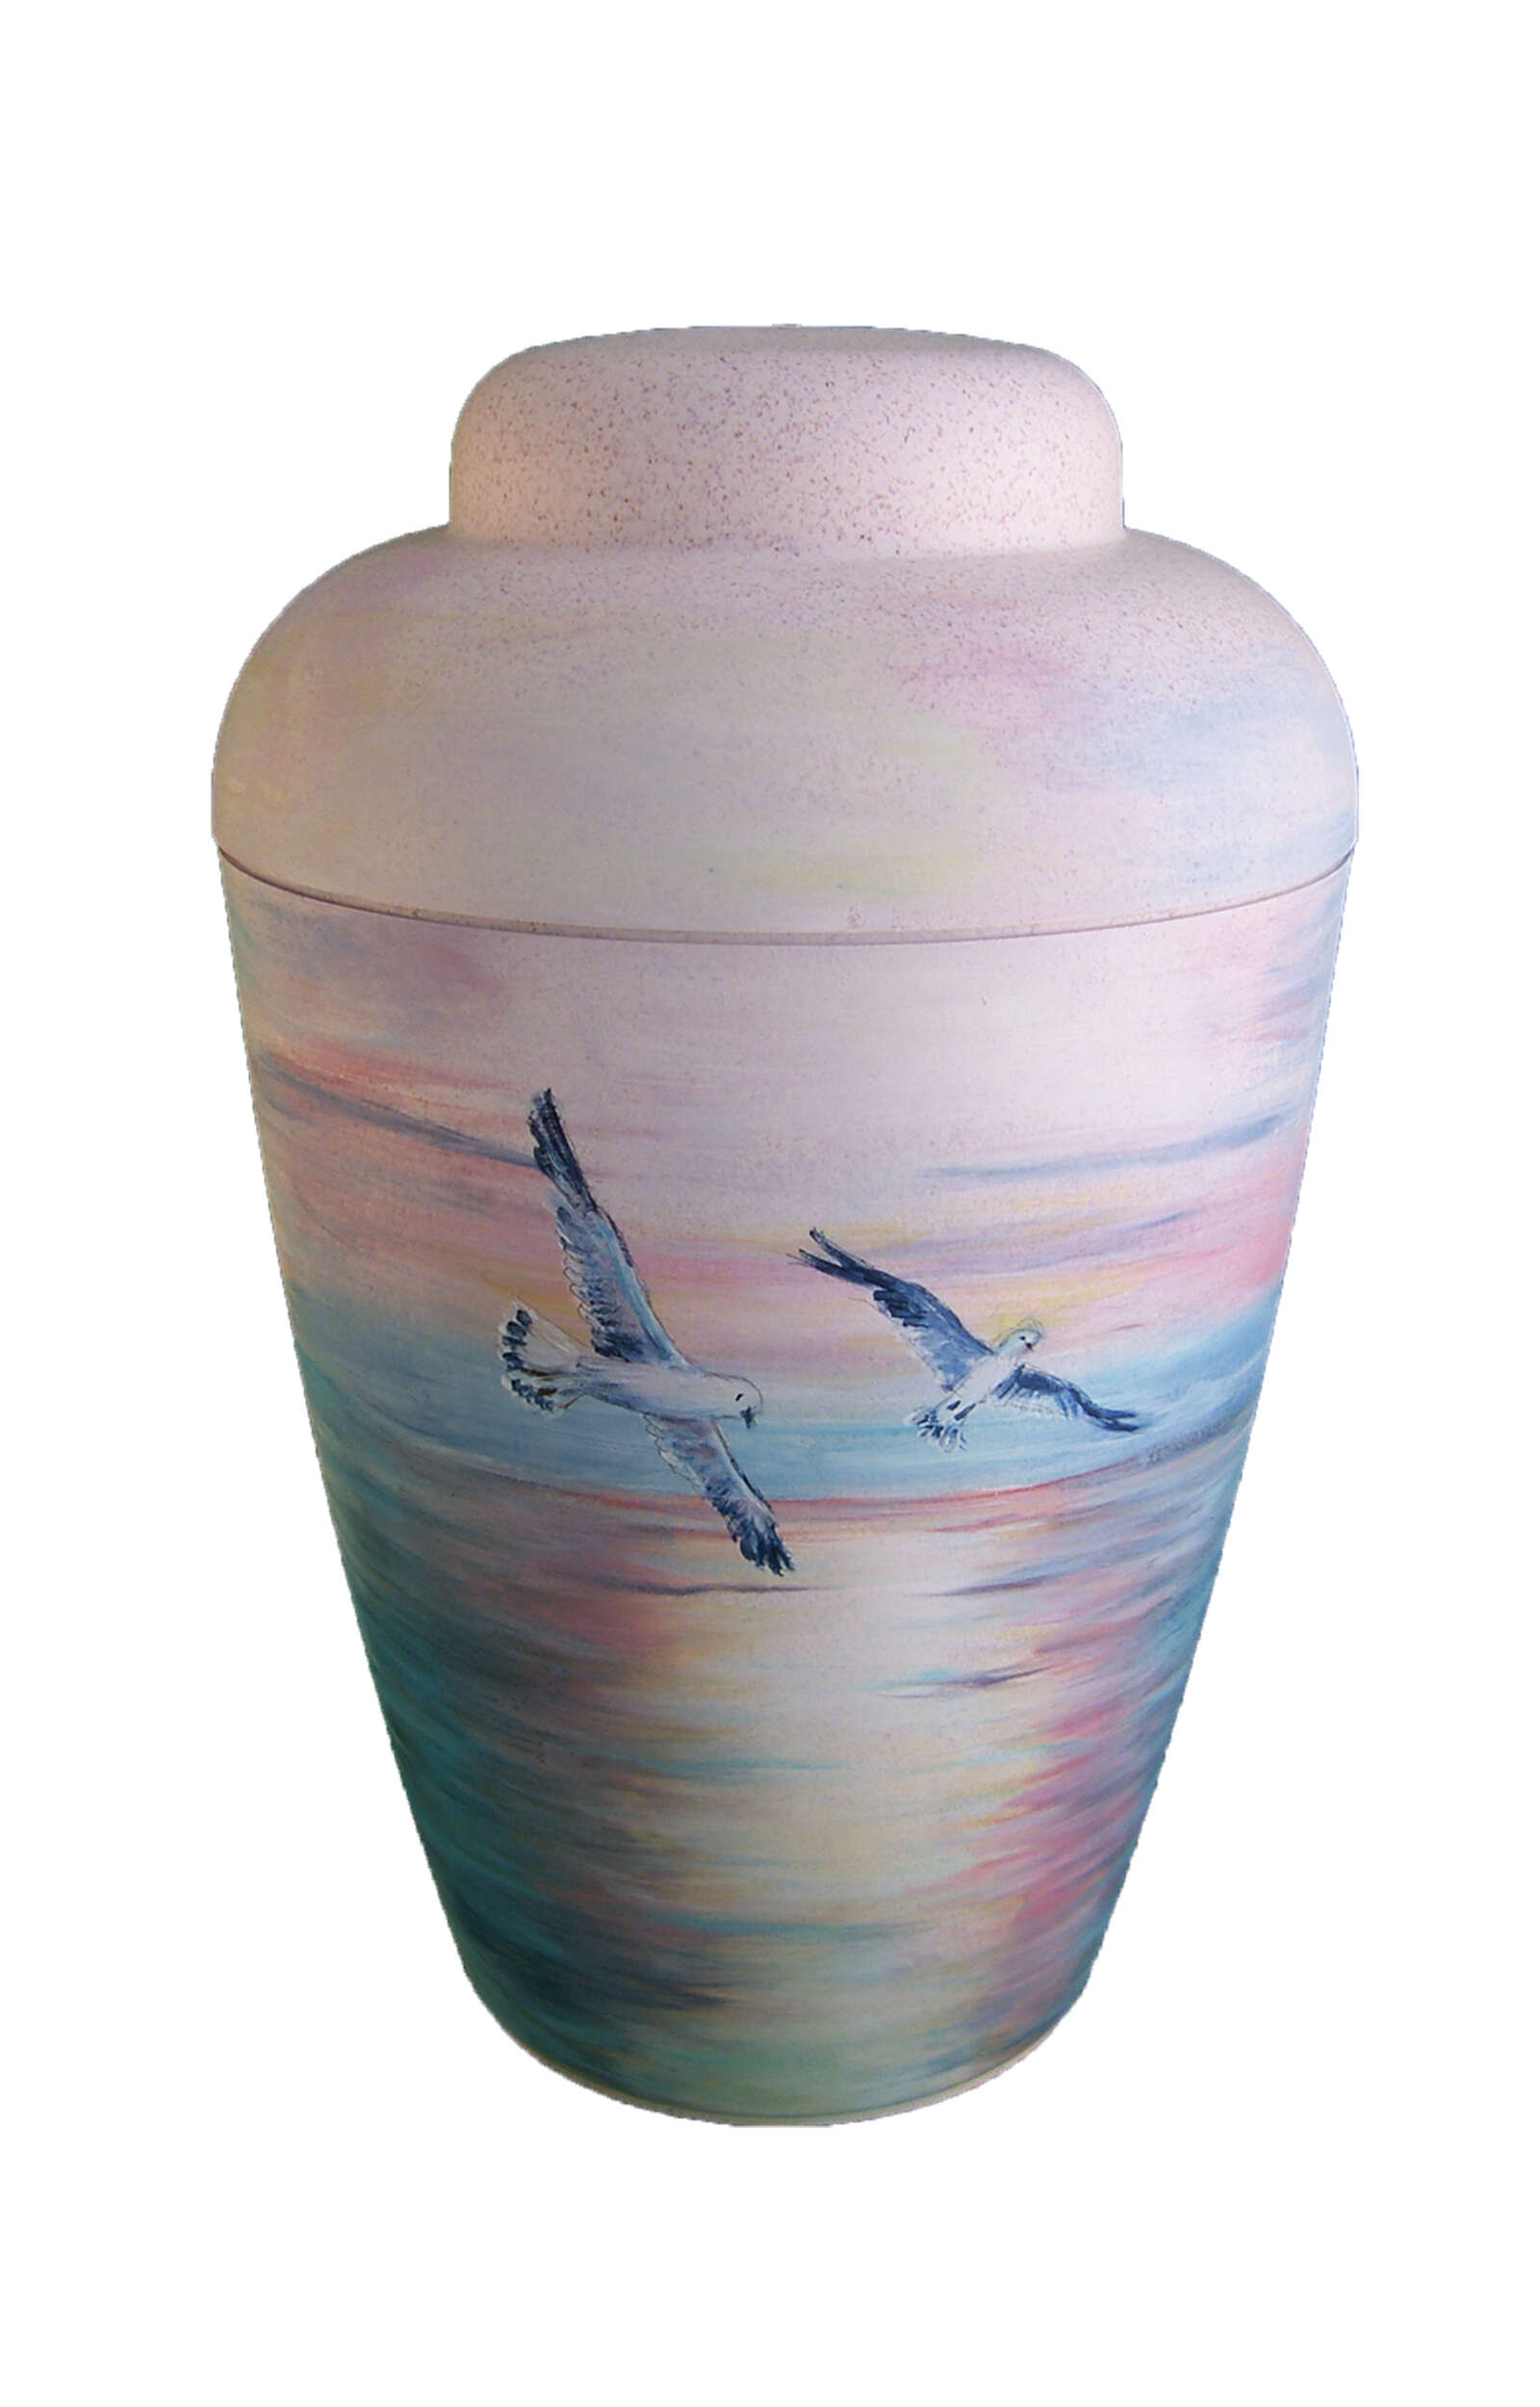 en BW1506 artist urn seagull sea lake biodogradable urns